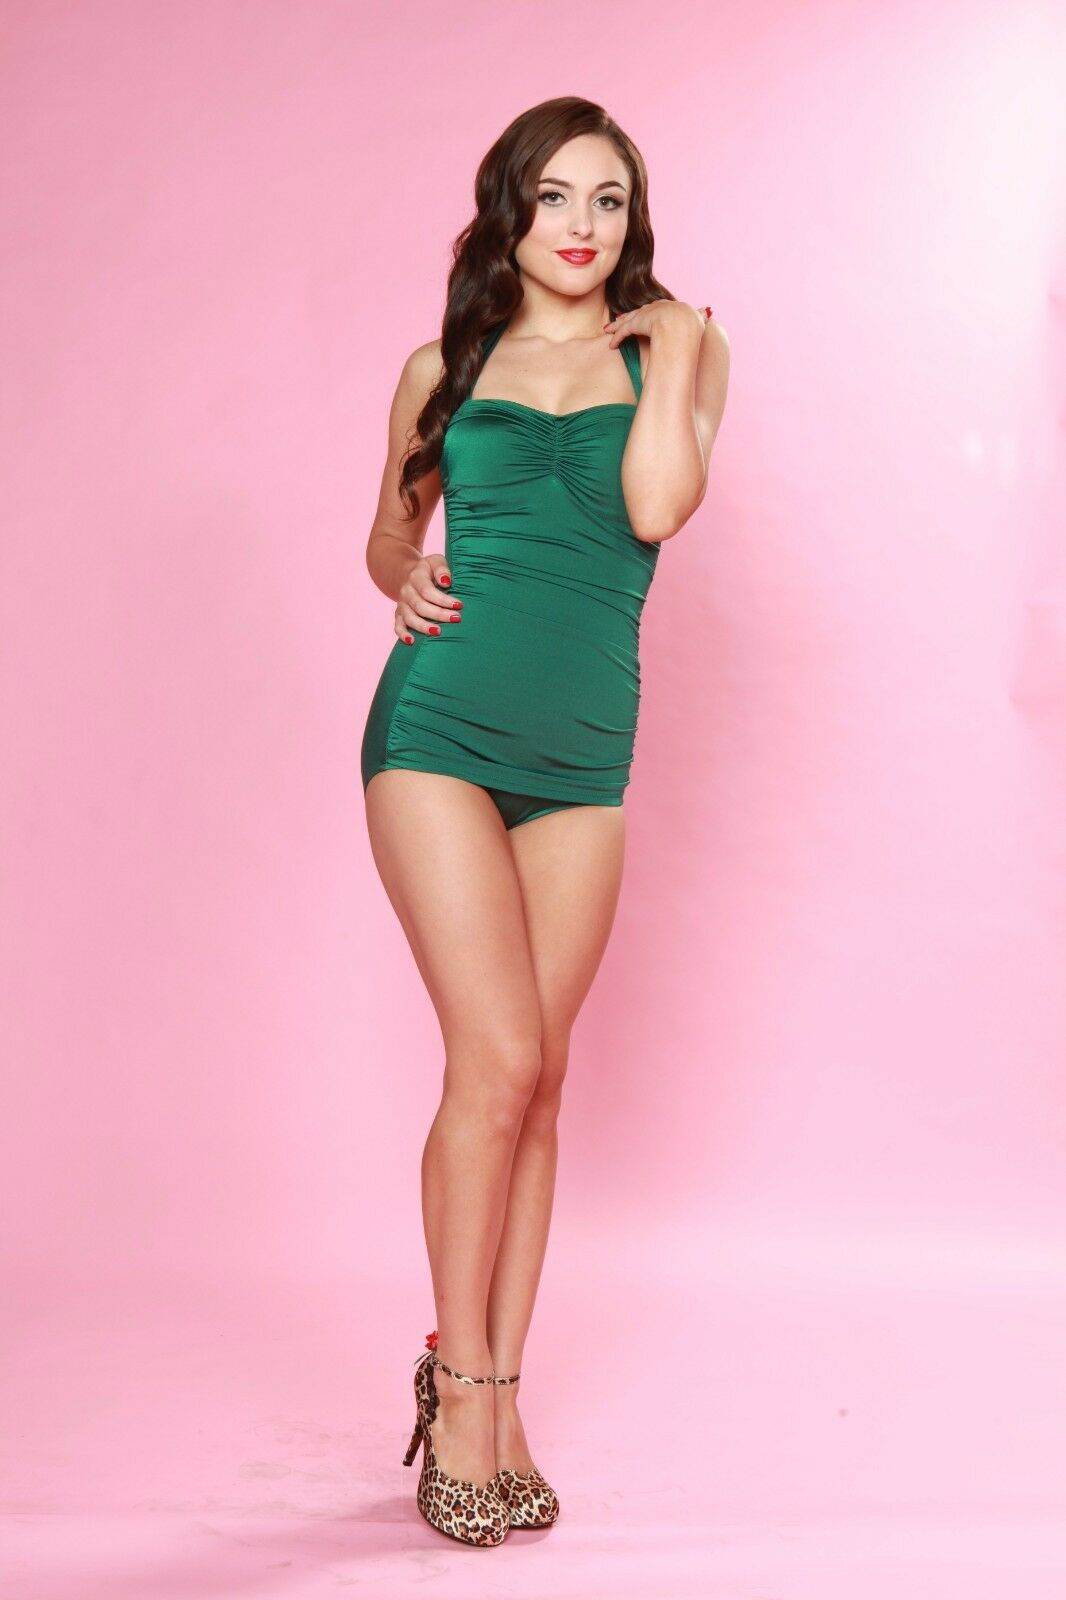 ESTHER WILLIAMS CLASSIC SHEATH GREEN ONE PIECE BATHING SWIM SUIT SWIMWEAR 4-16